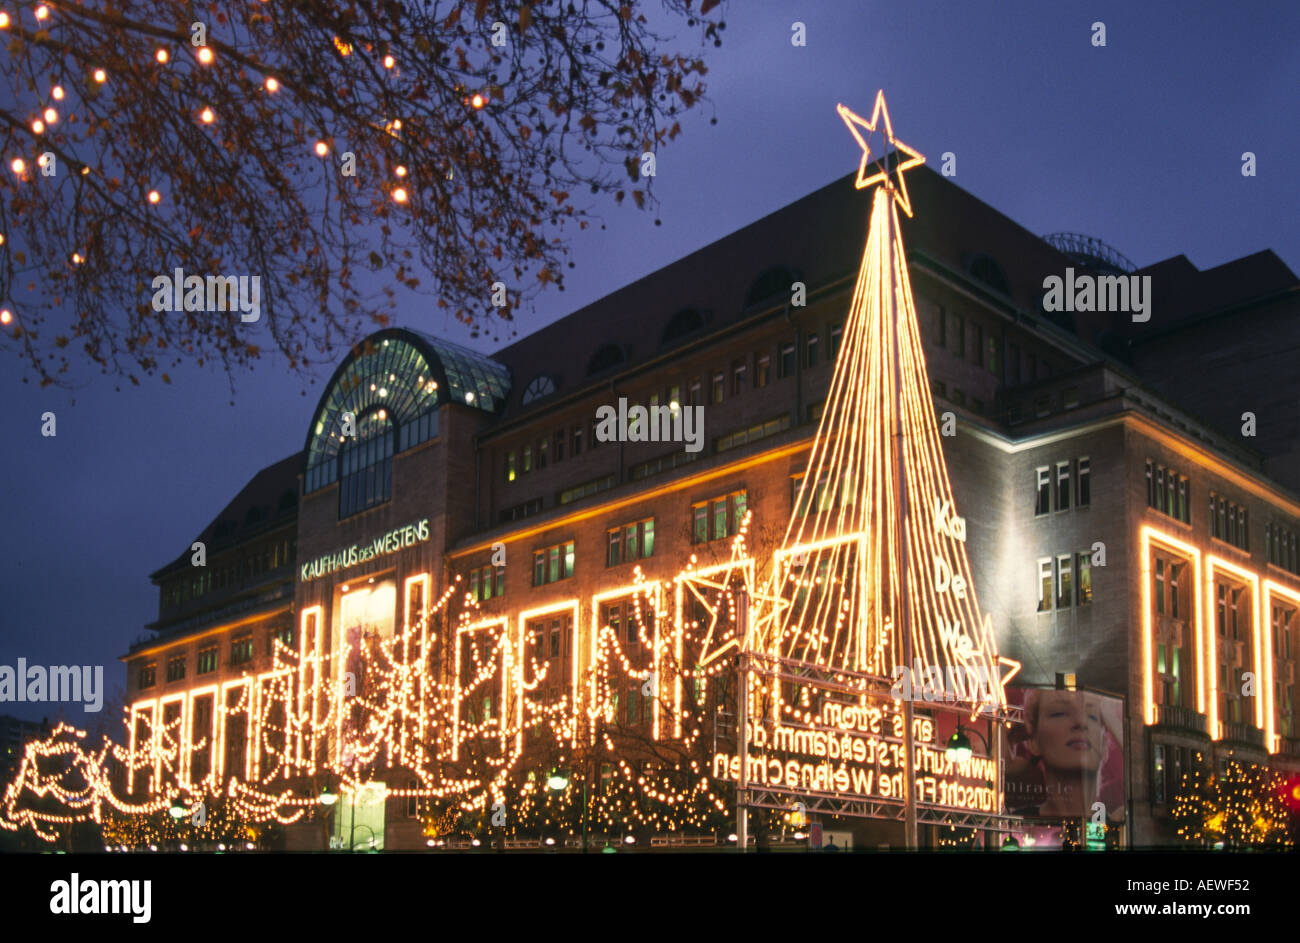 berlin kaufhaus des westens kdw western warehouse christmas lights